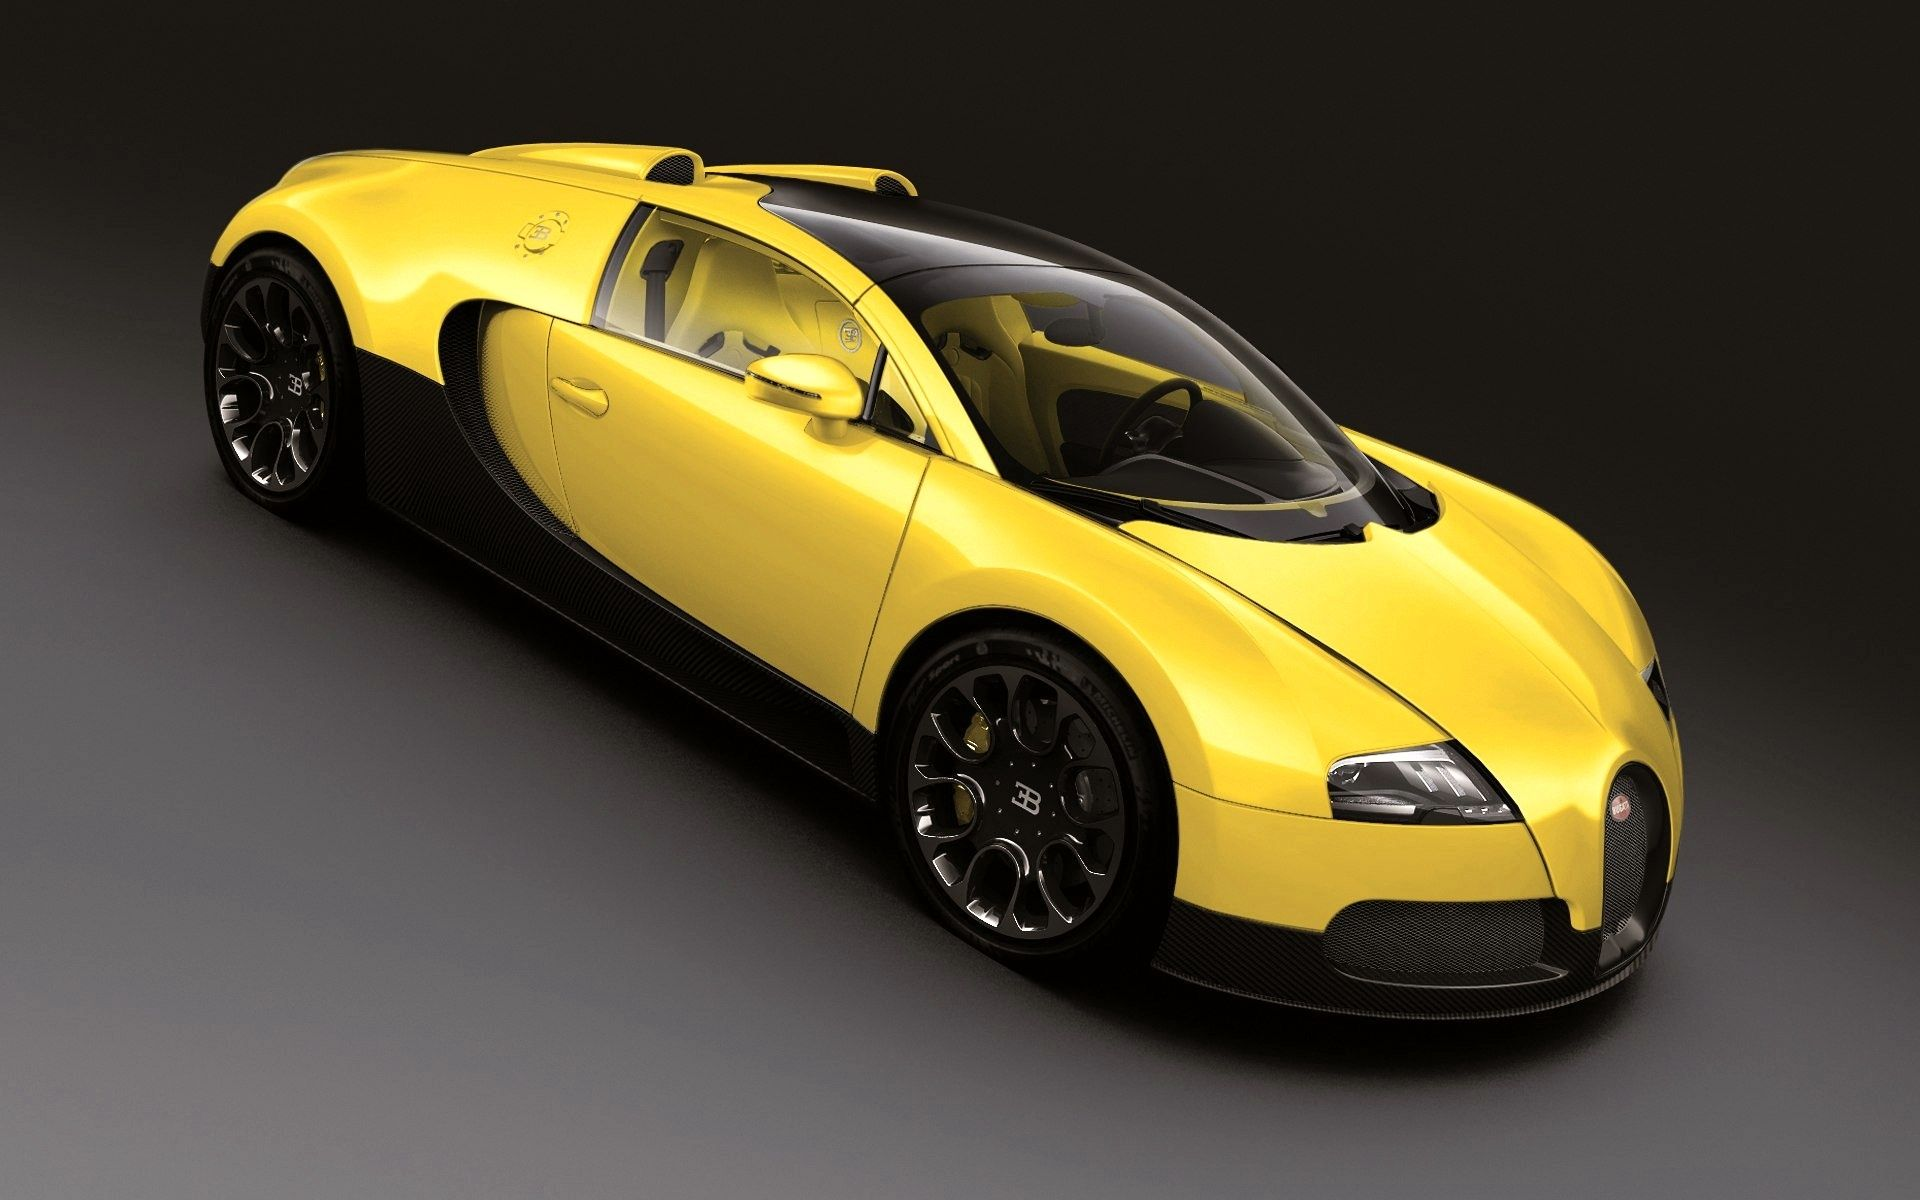 22300615 2012 Bugatti Veyron Grand Sport Middle East Edition Yellow And  Blue Varieties, Each Worth About Million USD